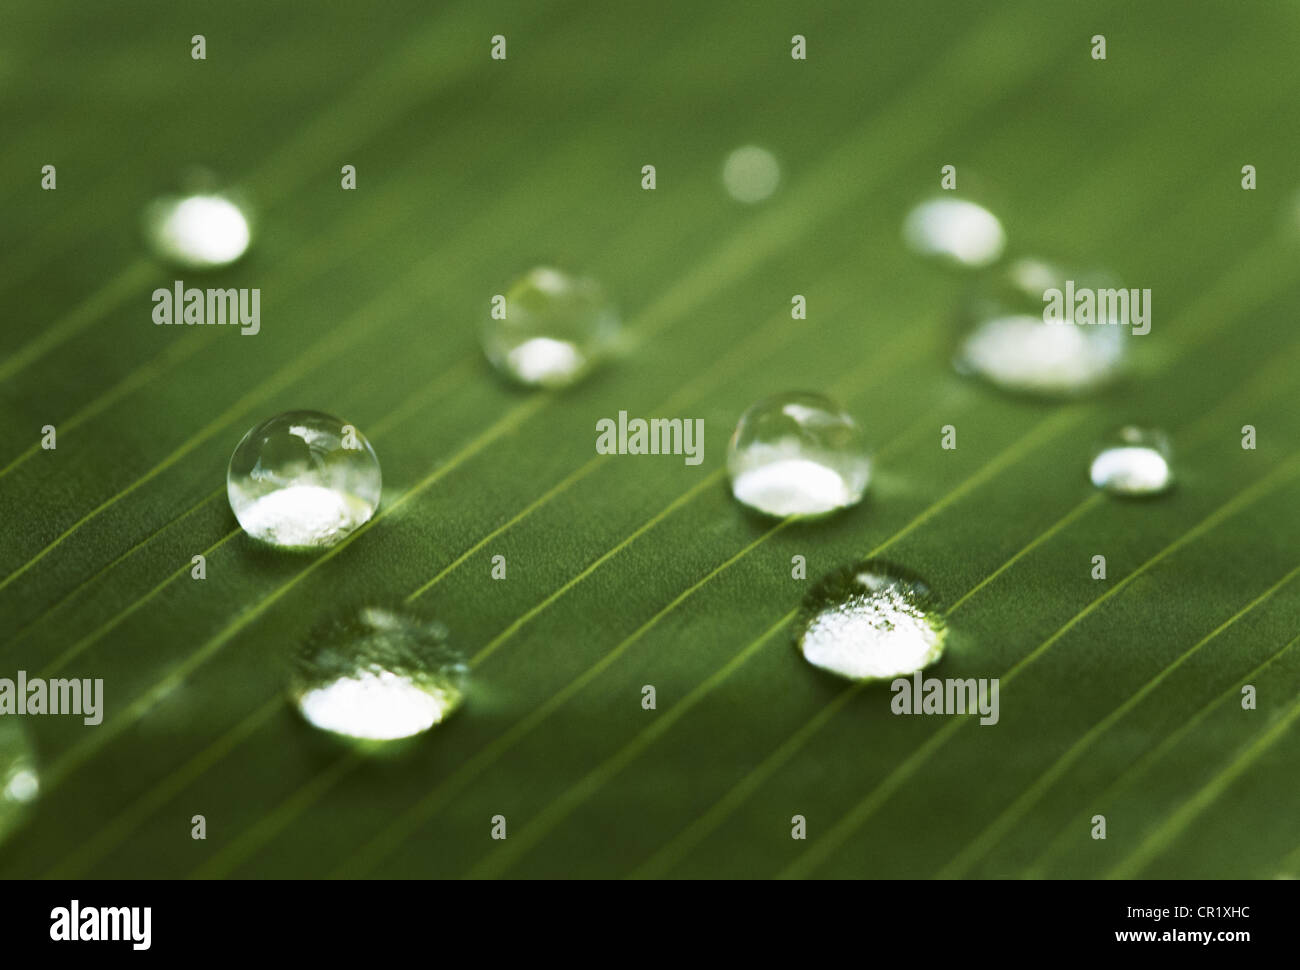 Close up of water droplets on leaf - Stock Image